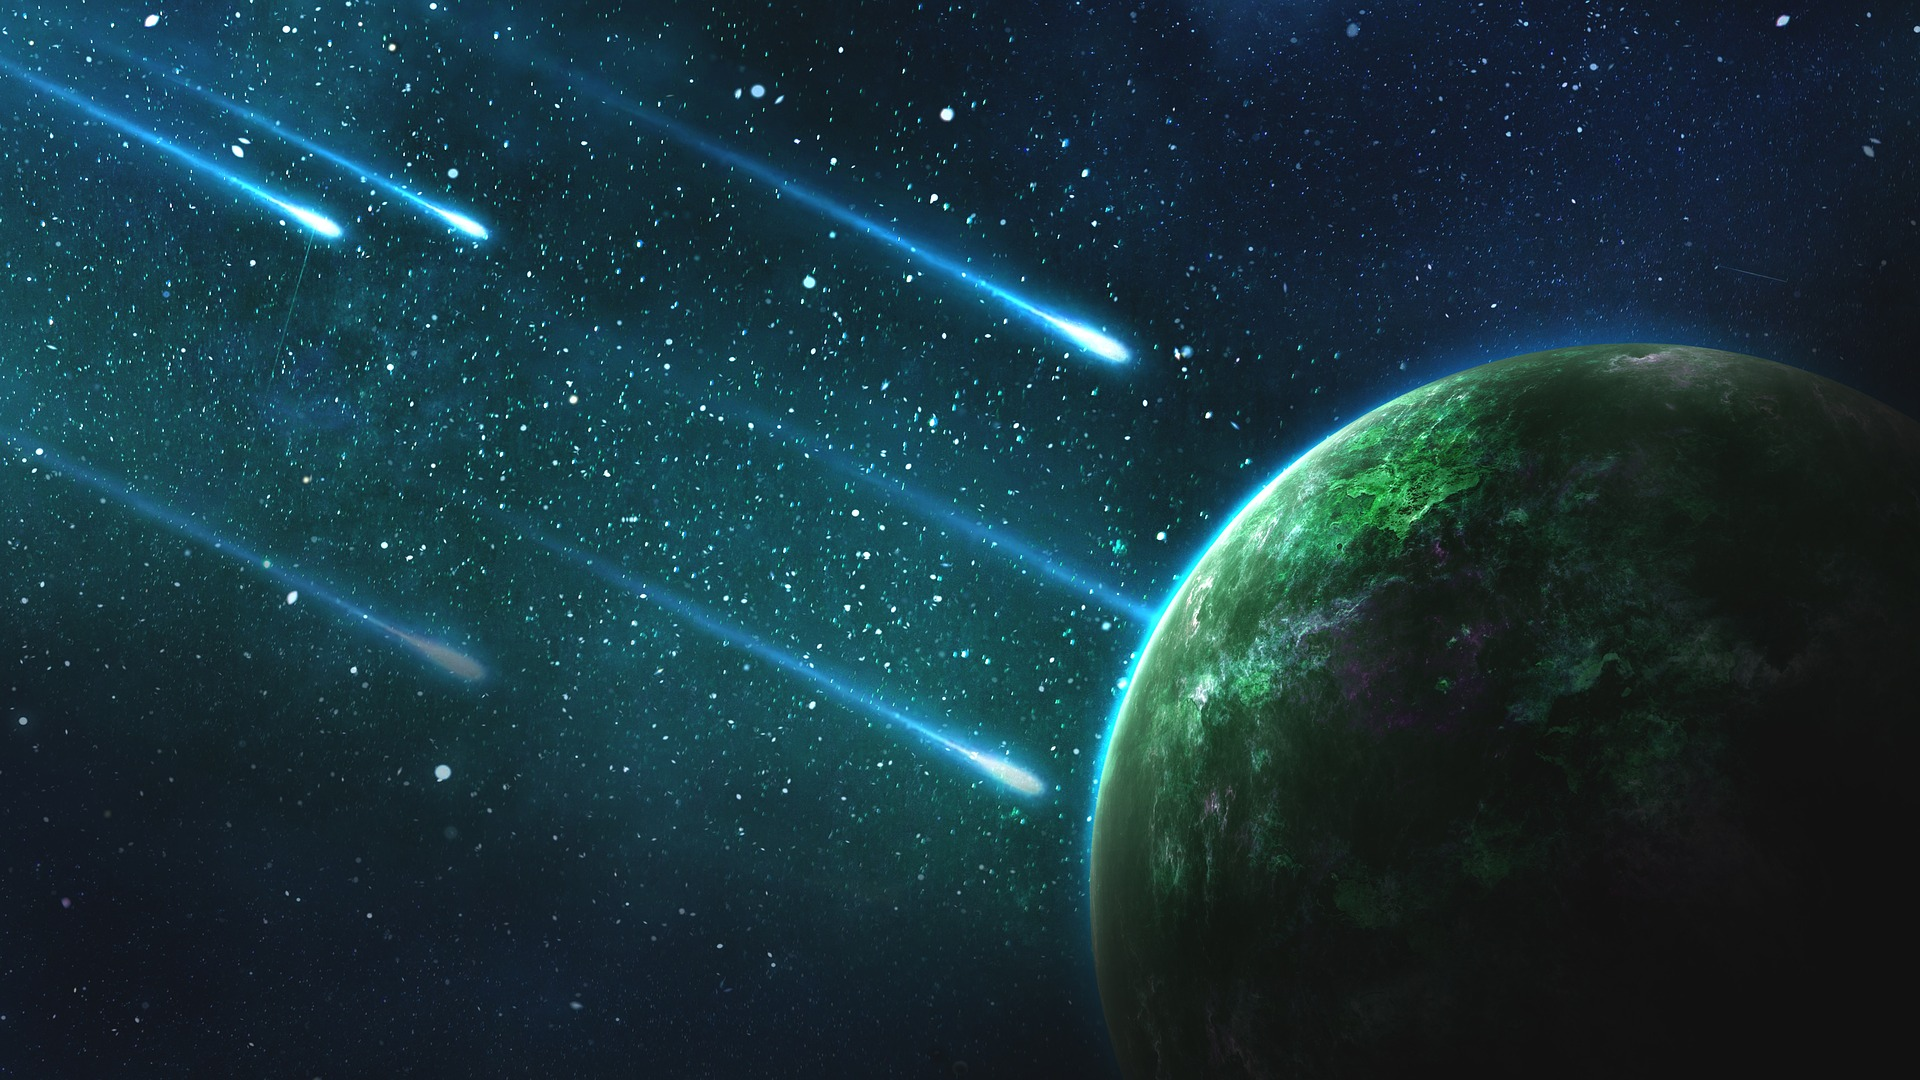 The 9 best meteor showers to watch in 2020